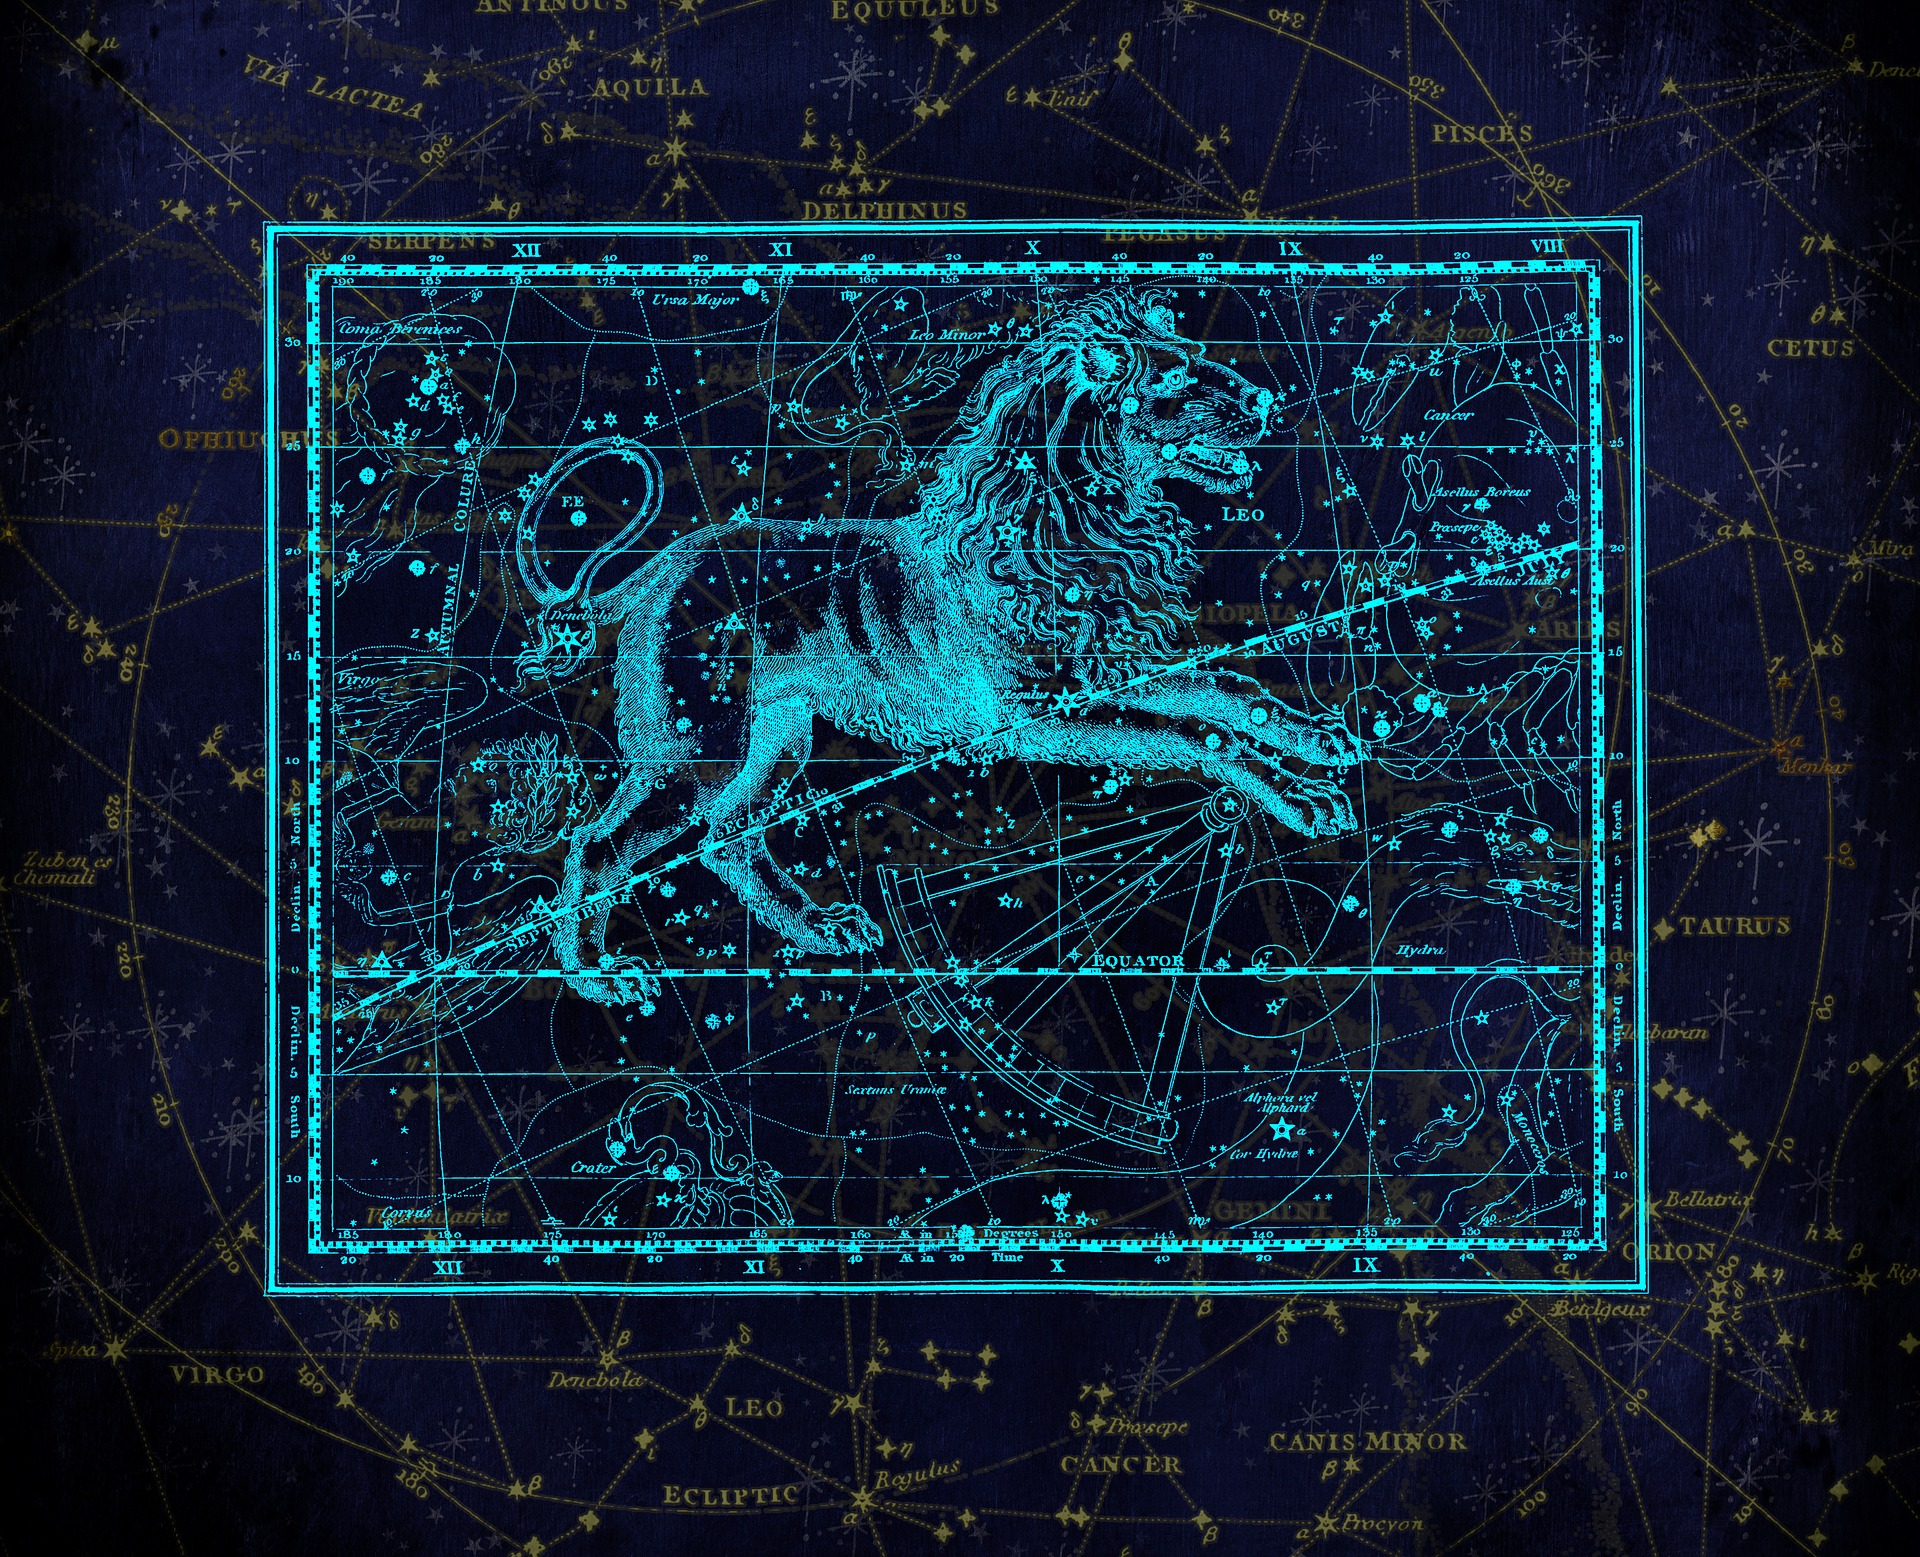 This illustrations shows a lion, the asgtrological sign Leo, as a constellation.